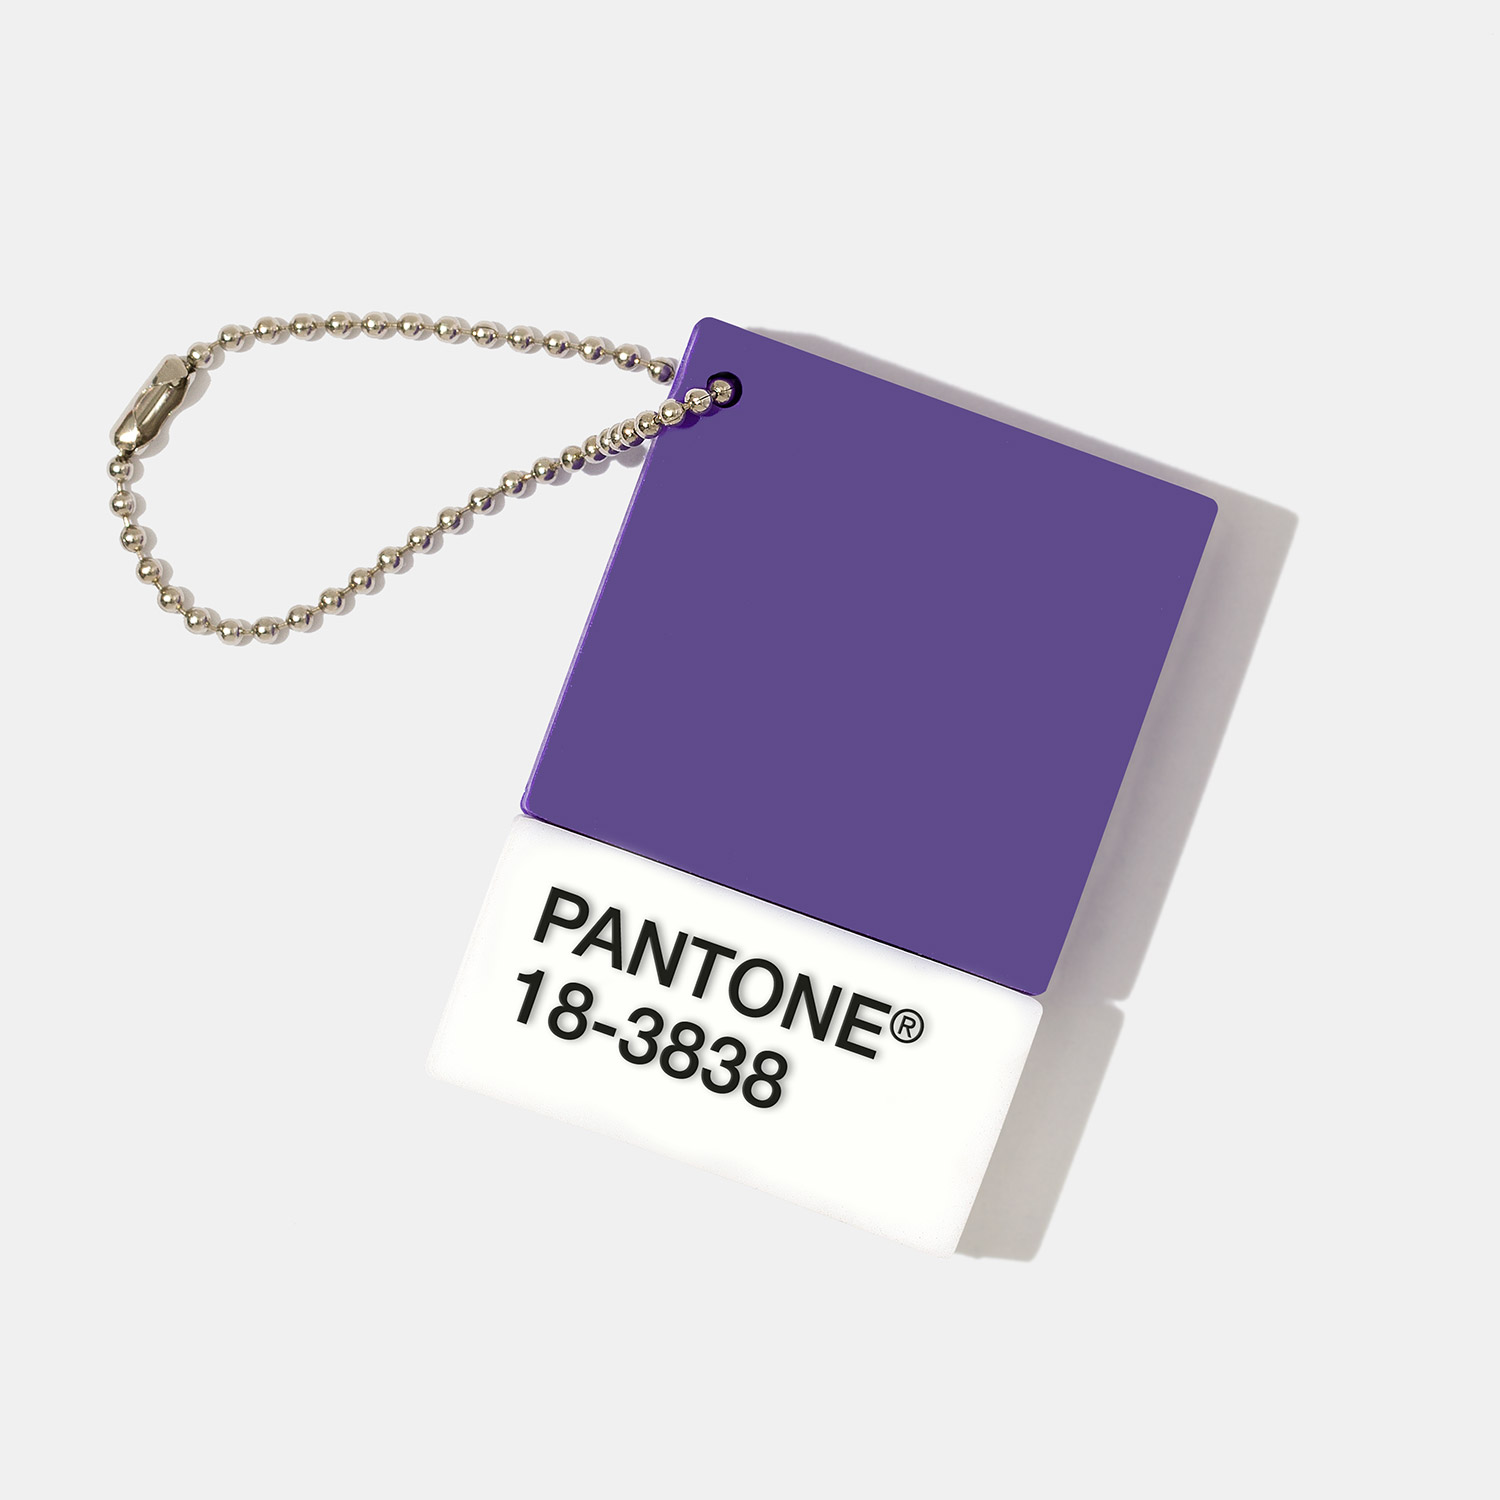 """The Pantone Color of the Year has come to mean so much more than 'what's trending' in the world of design; it's truly a reflection of what's needed in our world today"" -Laurie Pressman, Vice President of the Pantone Color Institute"